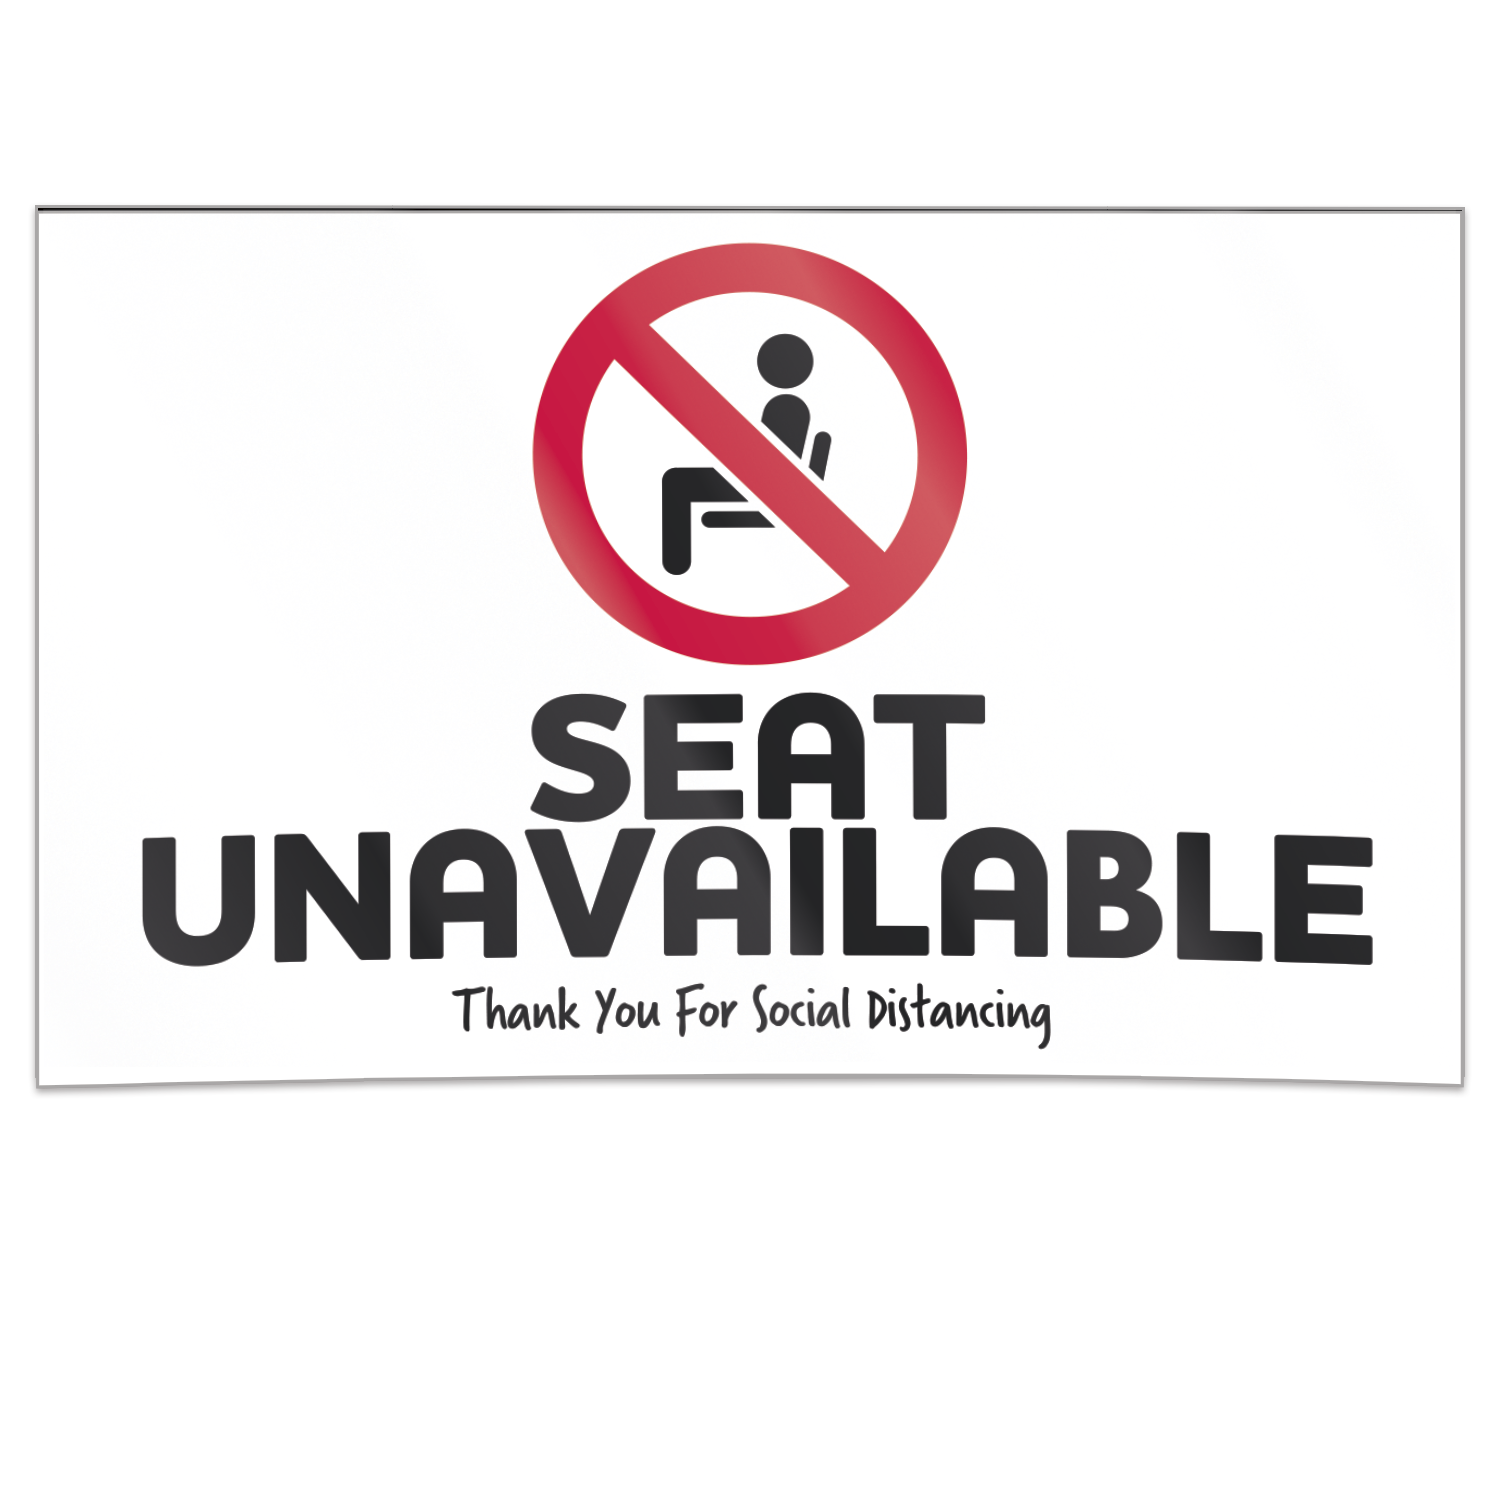 https://www.sswprinting.com/images/products_gallery_images/595801_Seat-Unavailable_hi-res.png